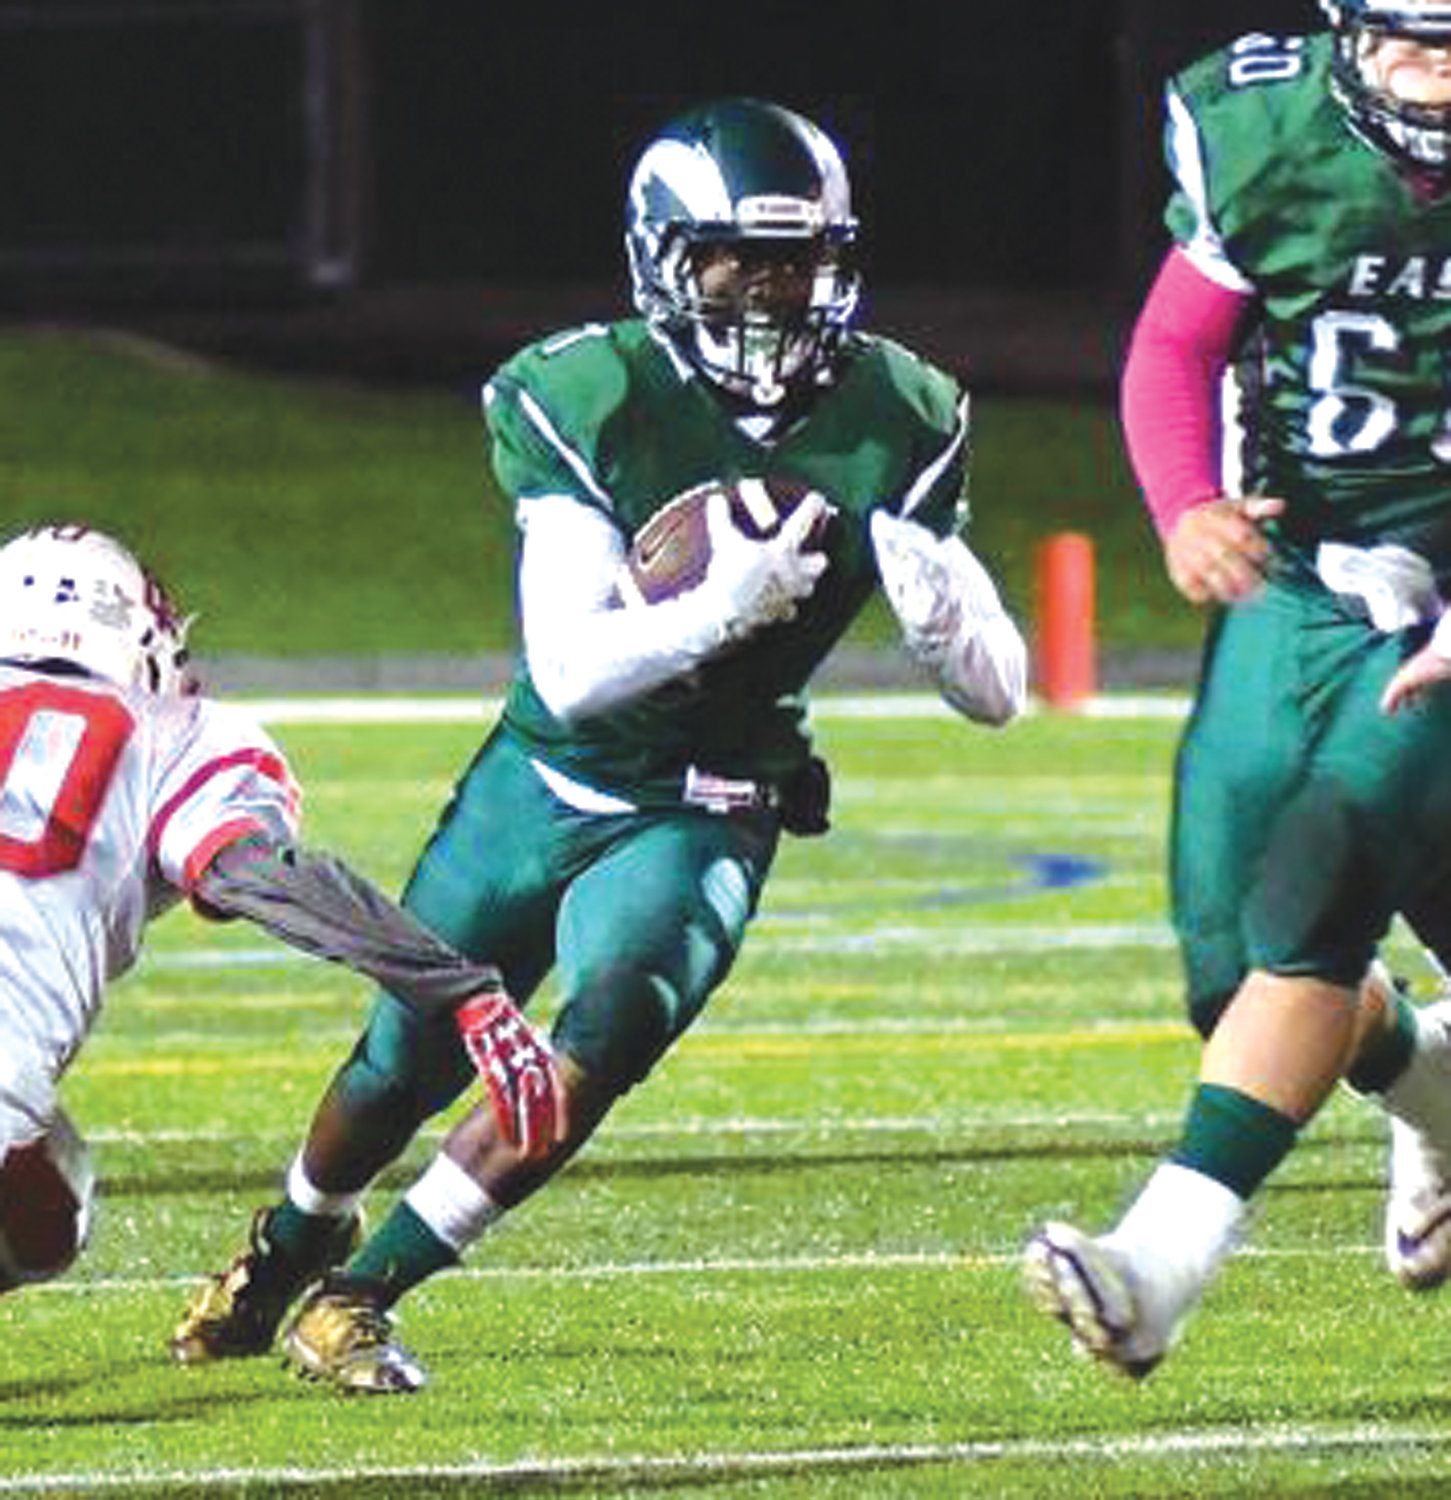 UP THE GUT: Cranston East running back Andrew Amoako takes a carry up the middle for the Thunderbolts last week at Cranston Stadium. East fell to visiting East Providence 39-0 to fall to 0-4 on the season. The Thunderbolts will now hit the road to take on the Bishop Hendricken Hawks on Friday evening.